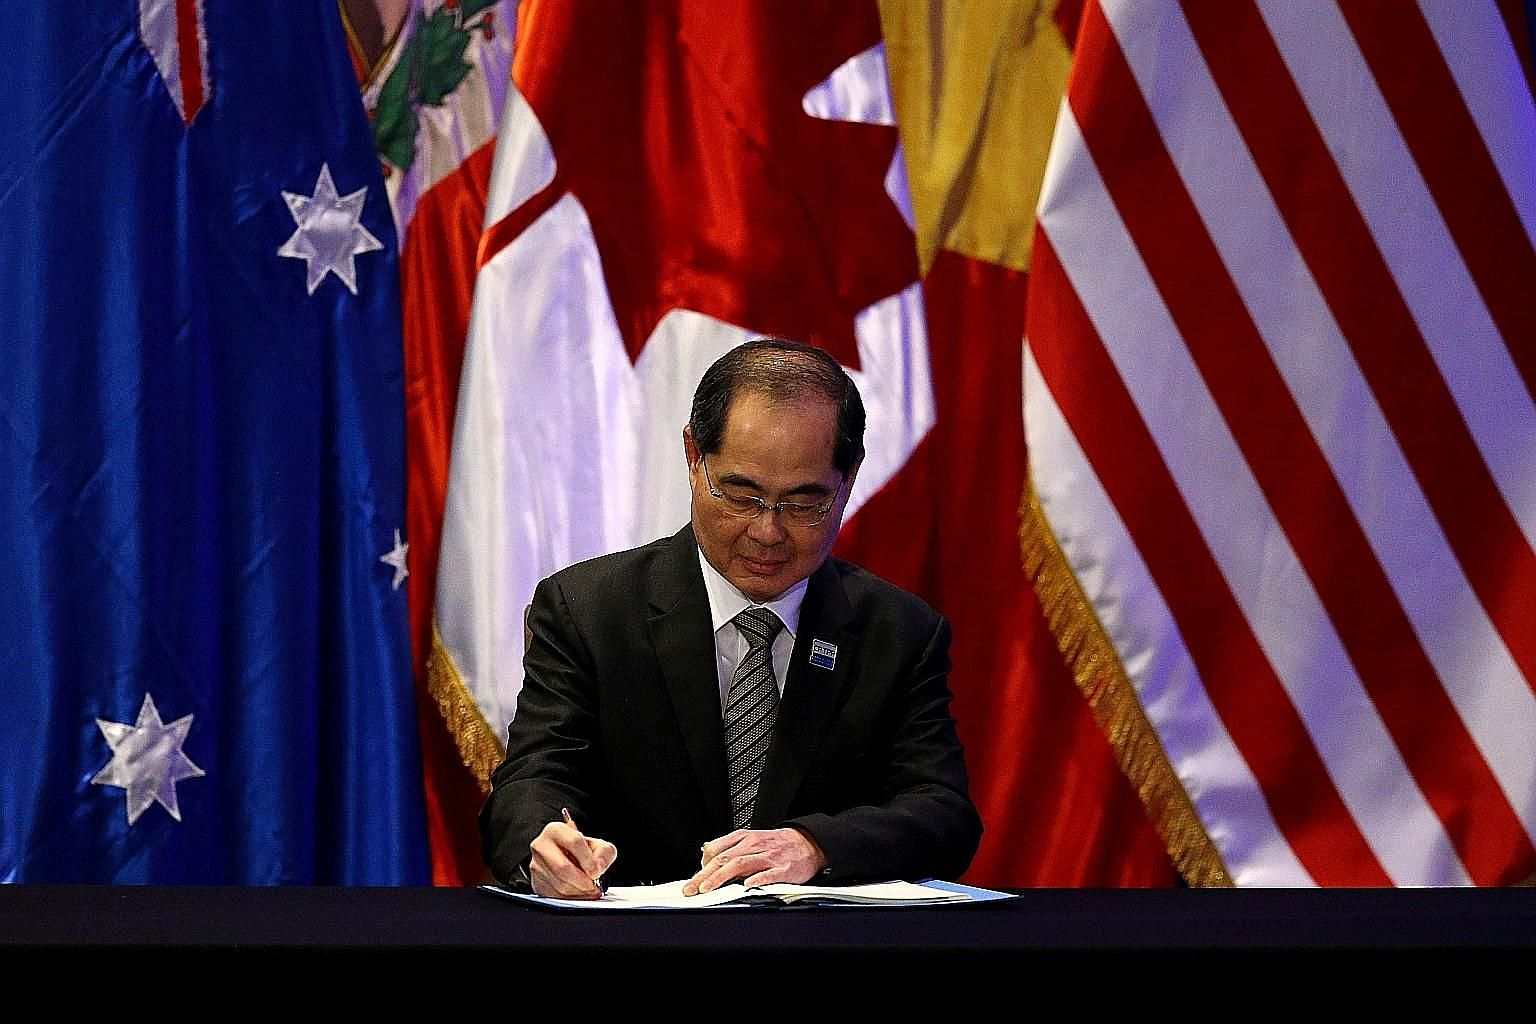 Mr Lim Hng Kiang signing the revised Trans-Pacific Partnership deal in Santiago, Chile, in March. The 64-year-old has helmed MTI for 14 years, through upheavals like the 2008 financial crisis and the ongoing economic restructuring.